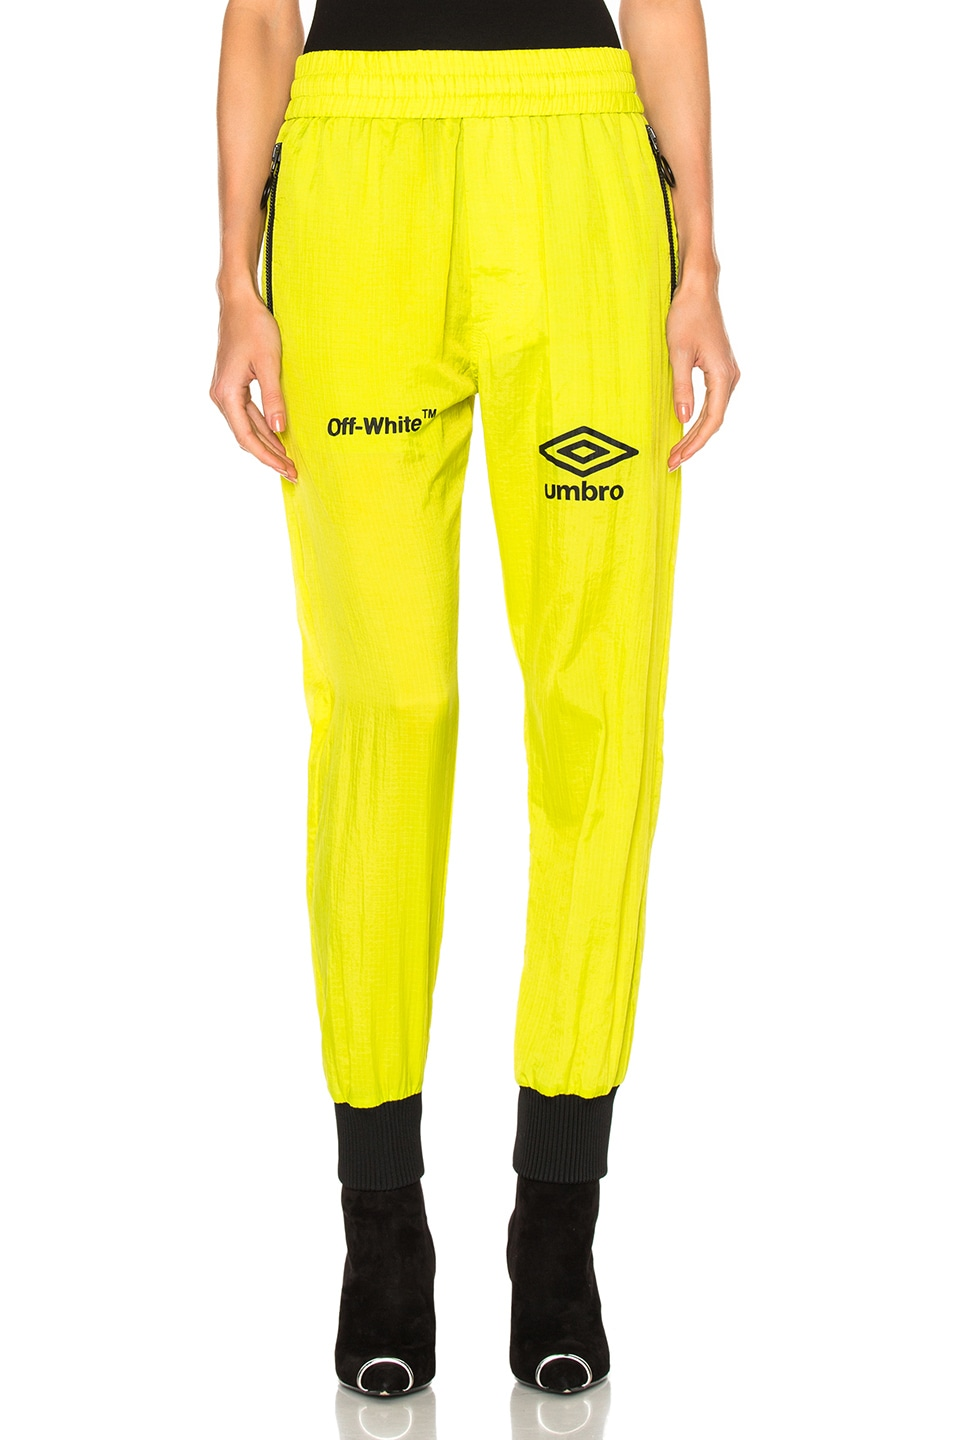 Image 1 of OFF-WHITE x Umbro Ripstop Pants in Brilliant Green & White